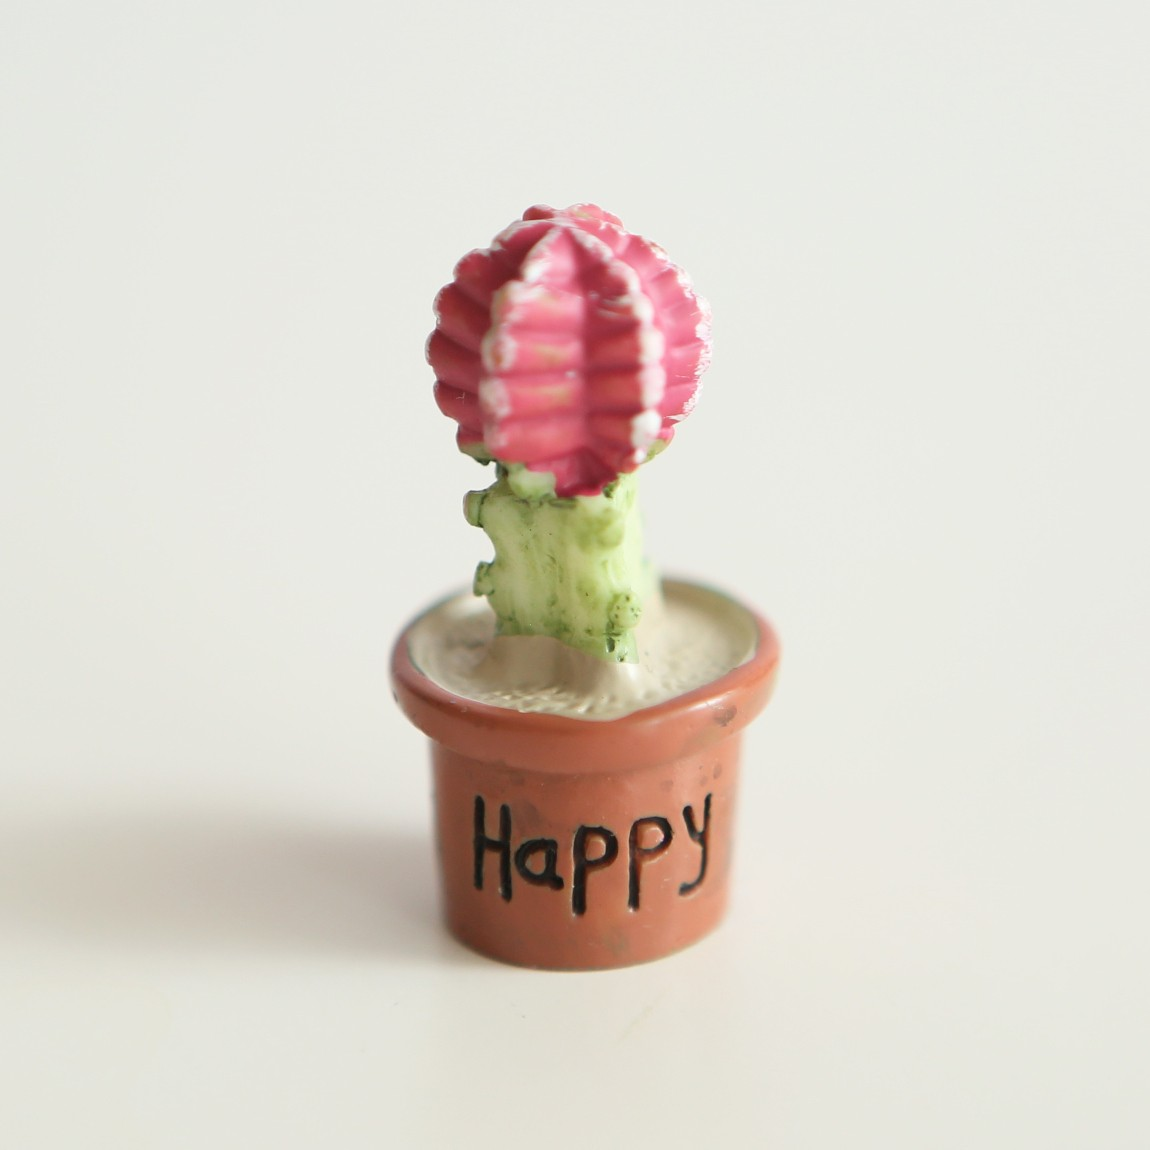 Miniature - Happy Cactus